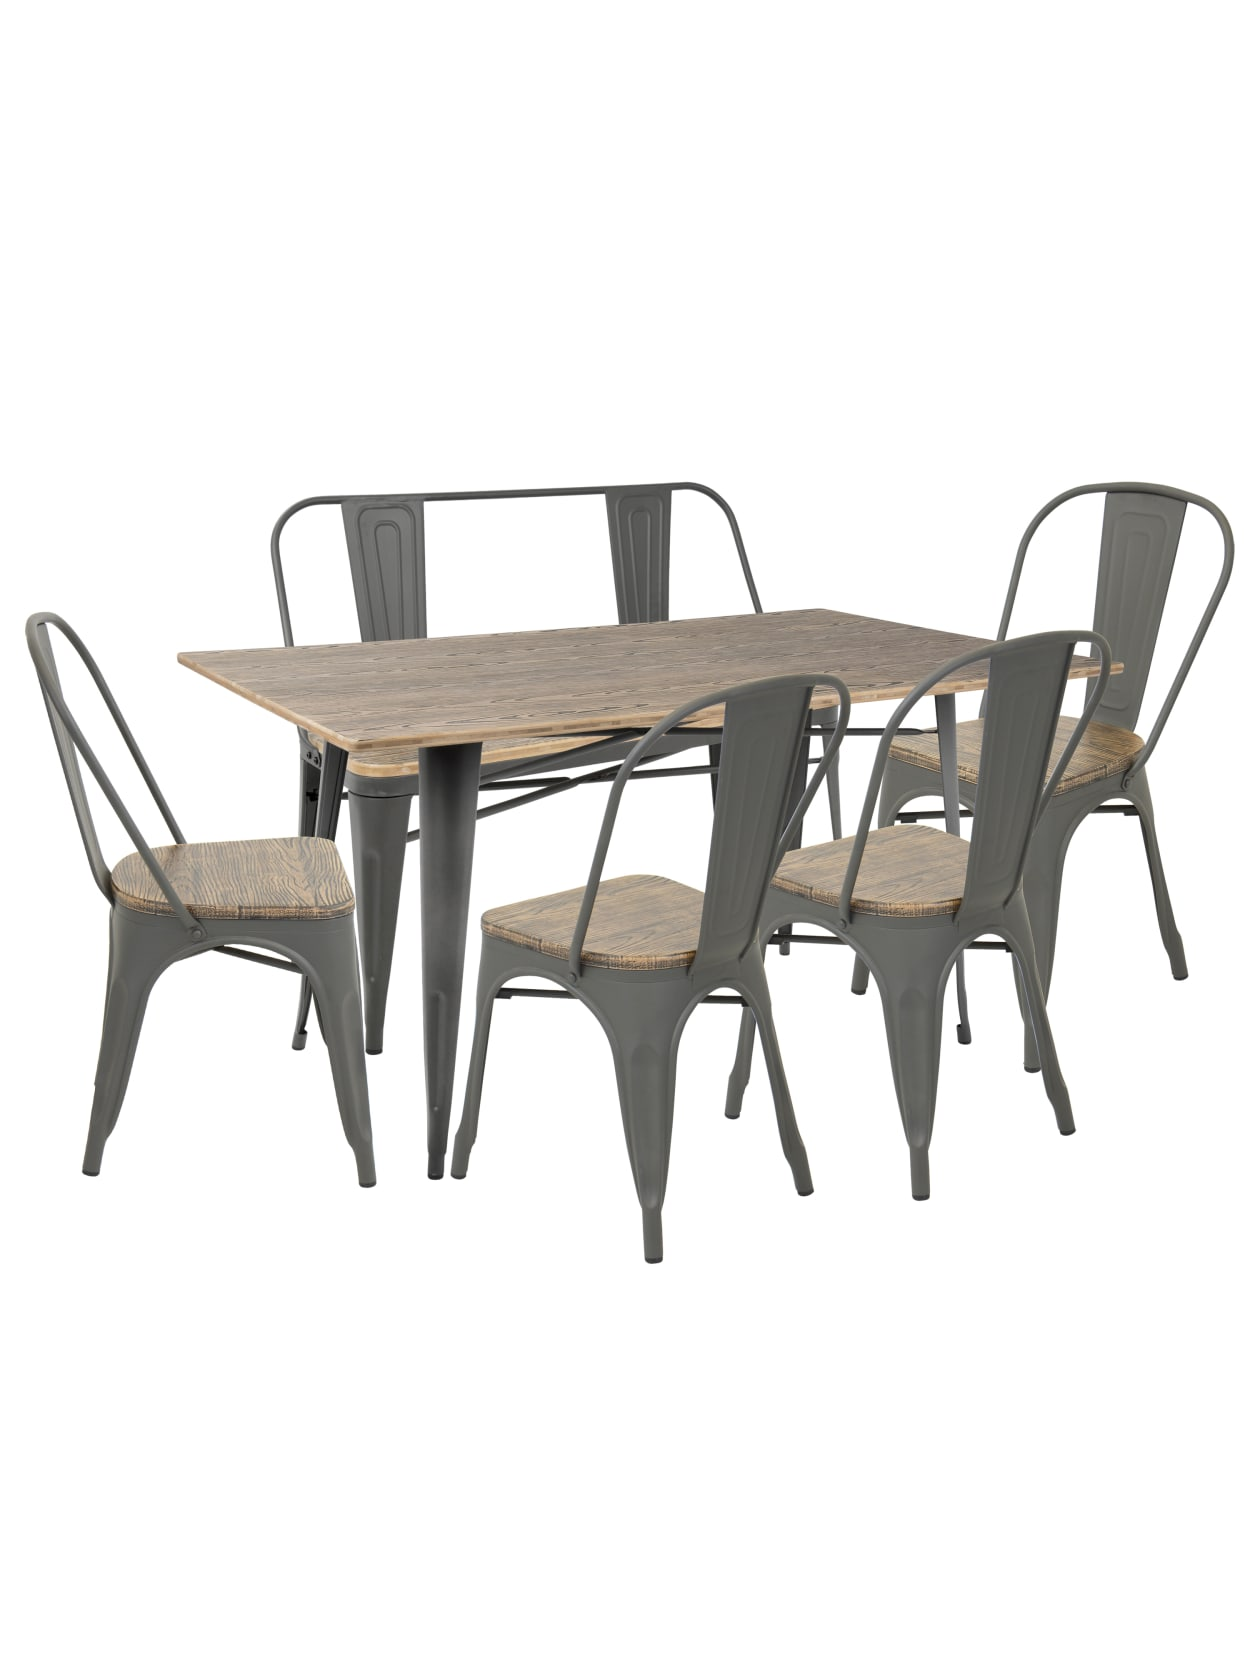 Lumisource Oregon Industrial Farmhouse Dining Table With 1 Bench And 4 Dining Chairs Graybrown Office Depot